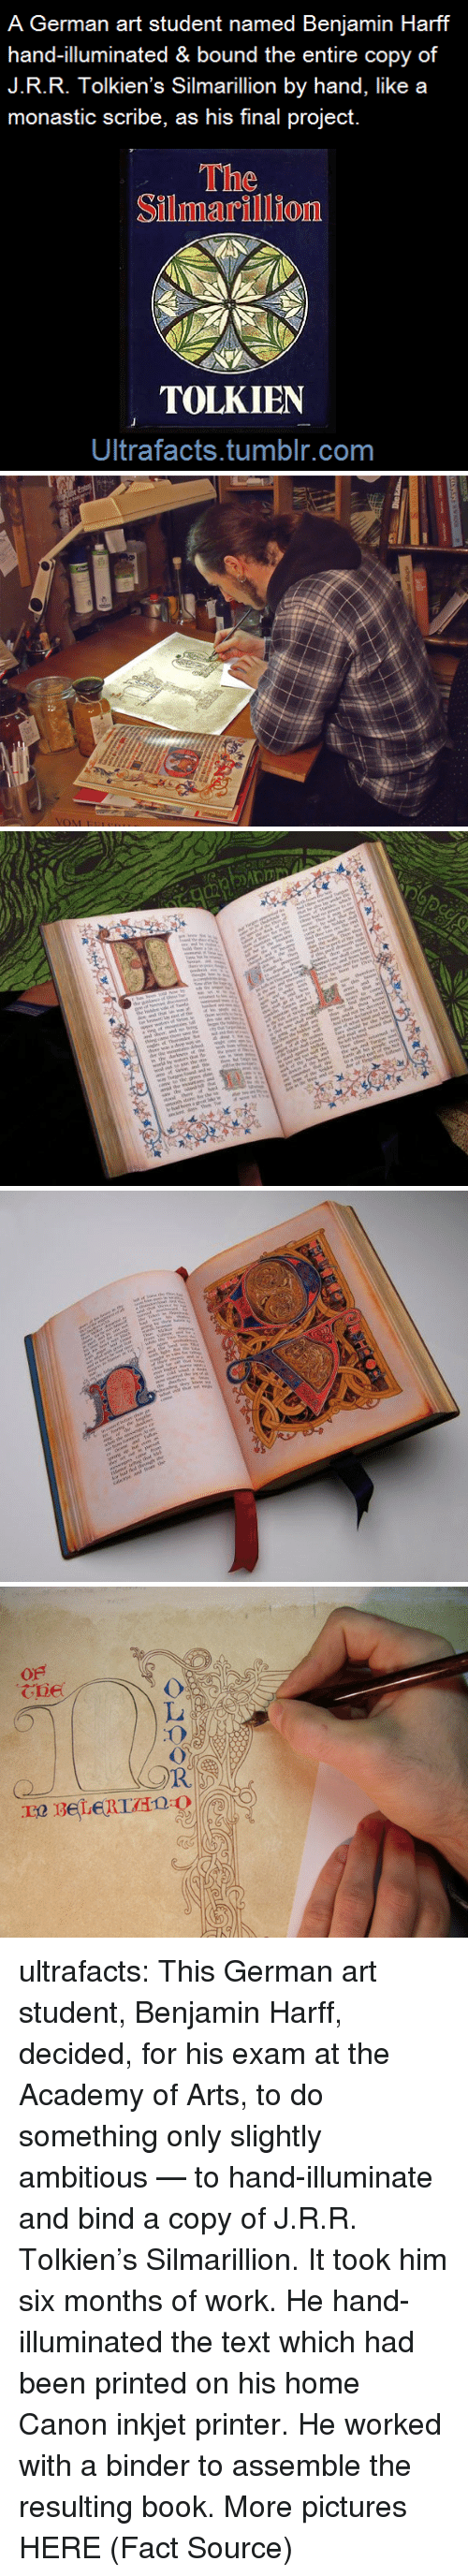 silmarillion: A German art student named Benjamin Harff  hand-illuminated & bound the entire copy of  J.R.R. Tolkien's Silmarillion by hand, like a  monastic scribe, as his final project.  The  Silmarillion  TOLKIEN  Ultrafacts.tumblr.com ultrafacts: This German art student, Benjamin Harff, decided, for his exam at the Academy of Arts, to do something only slightly ambitious — to hand-illuminate and bind a copy of J.R.R. Tolkien's Silmarillion. It took him six months of work. He hand-illuminated the text which had been printed on his home Canon inkjet printer. He worked with a binder to assemble the resulting book. More pictures HERE (Fact Source)